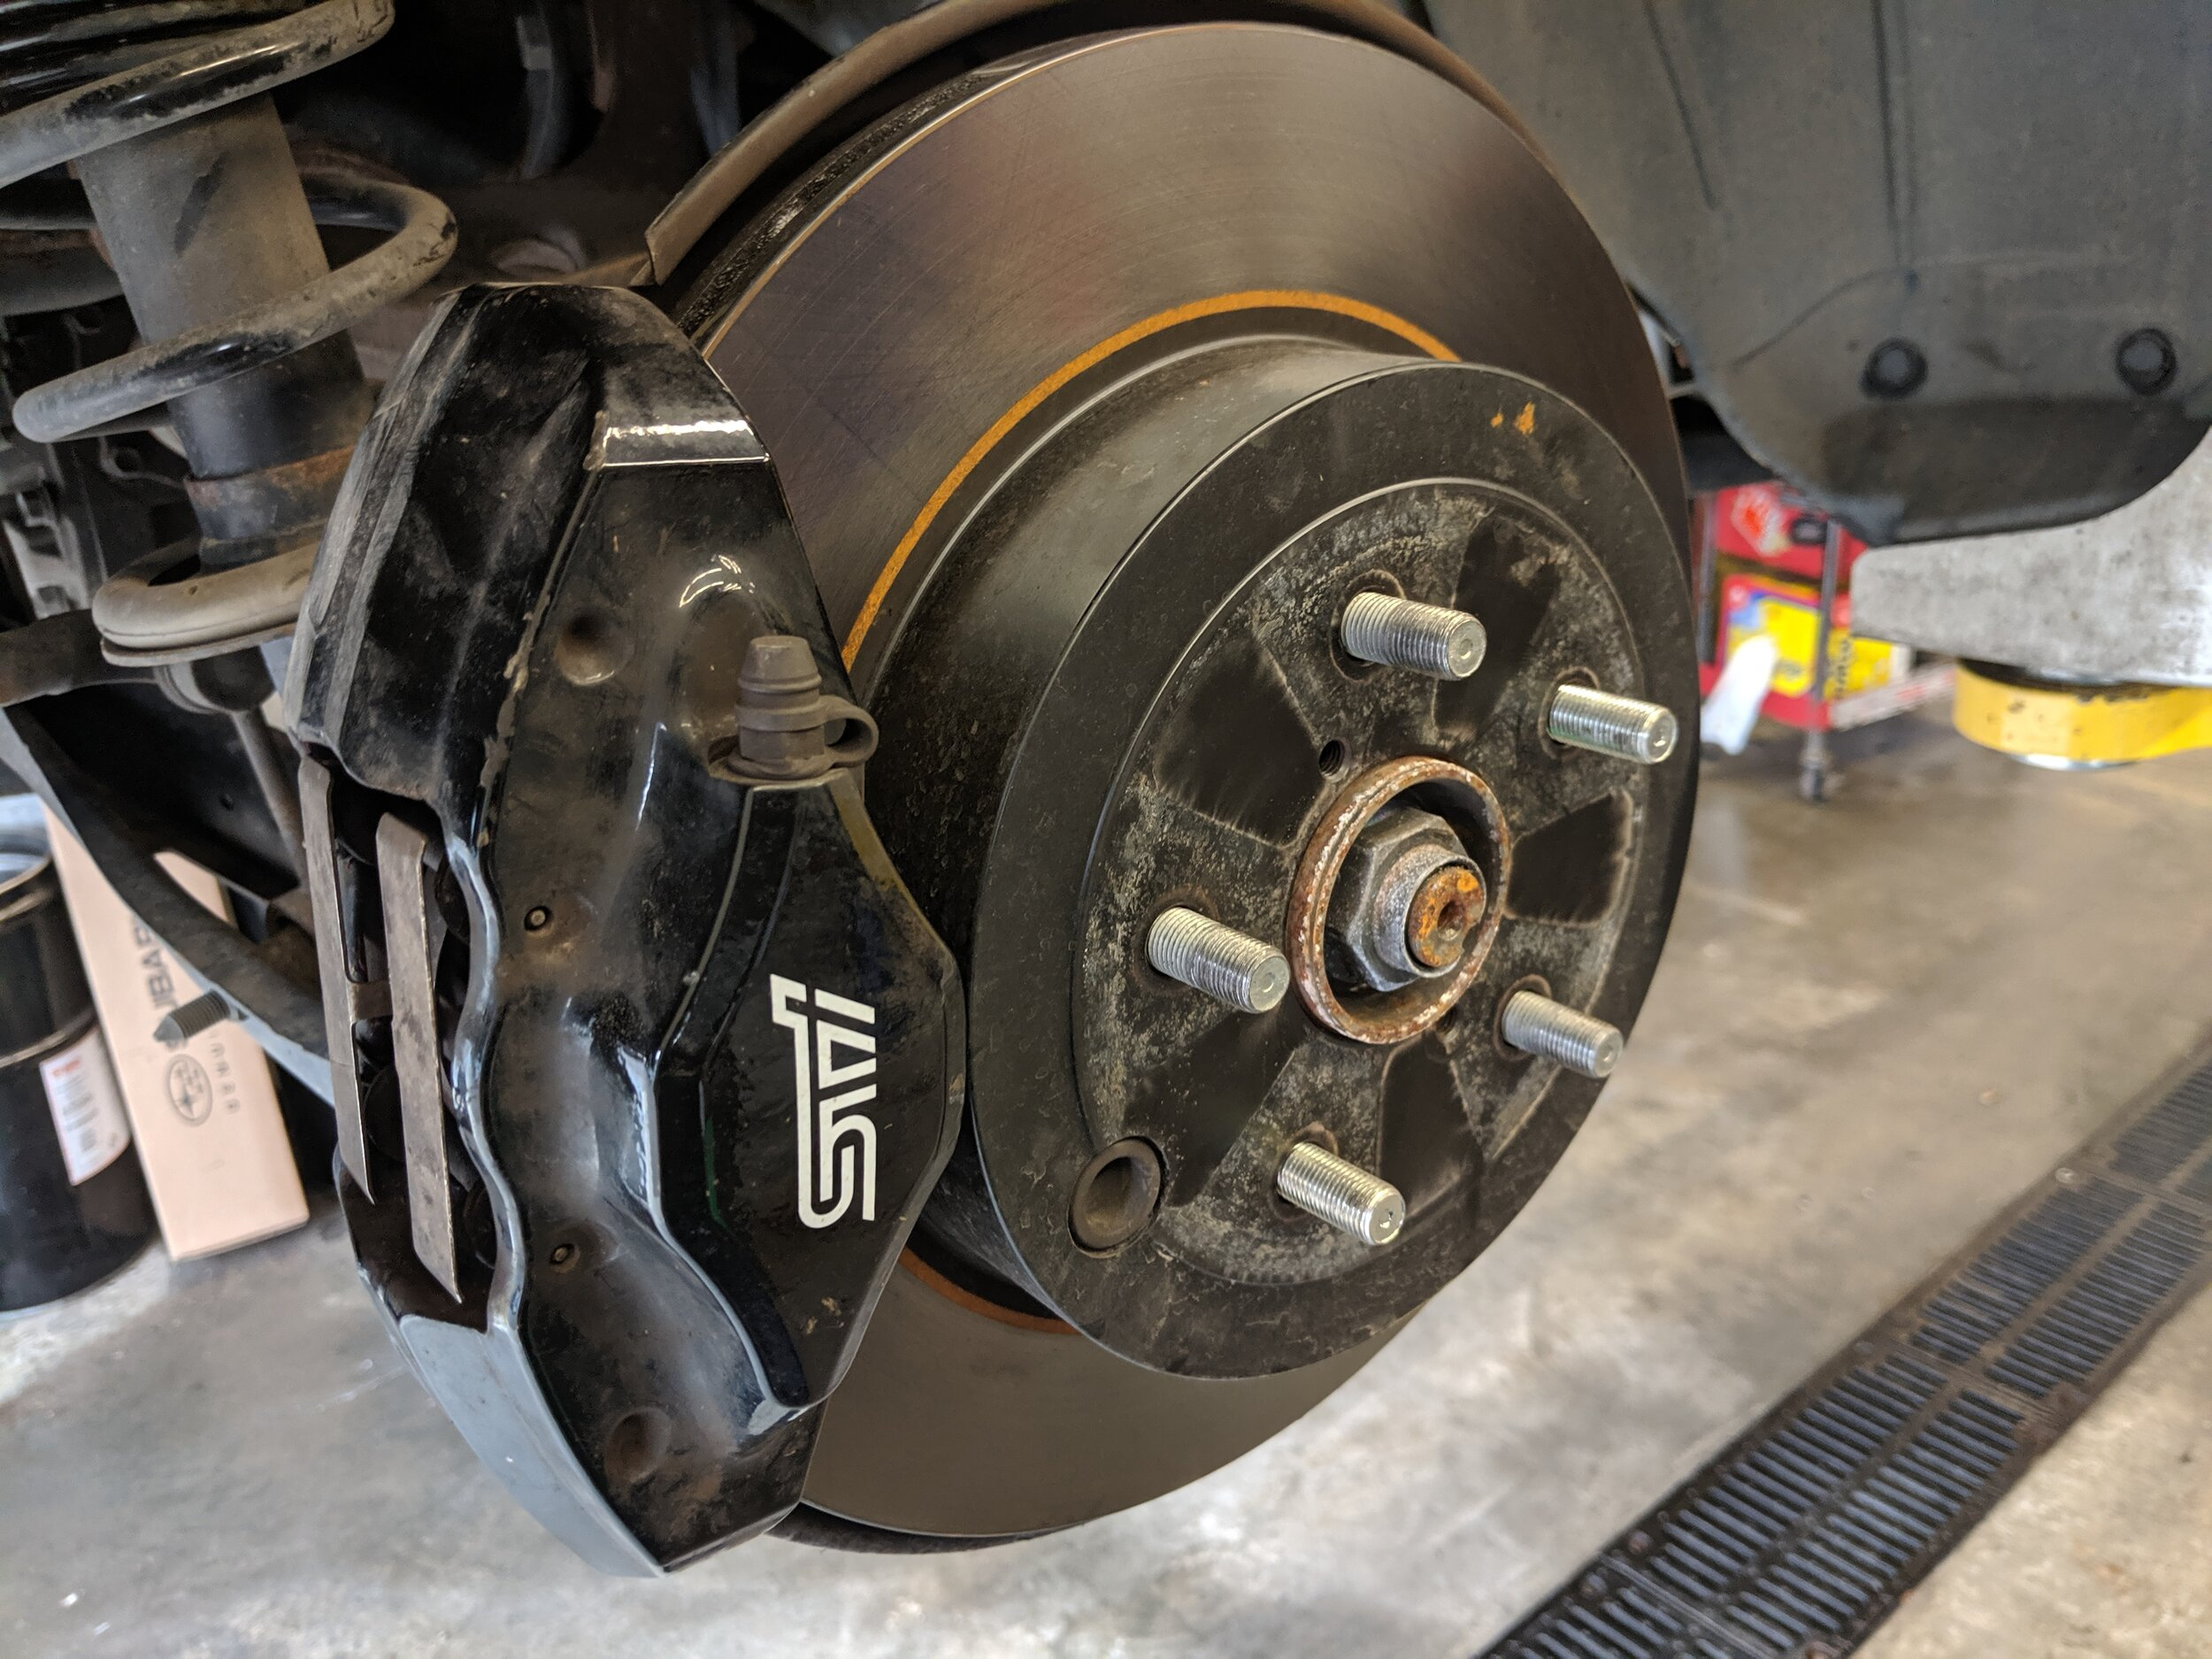 With the wheel removed we can see where we need to be. Removing the caliper and rotor is our upcoming steps.